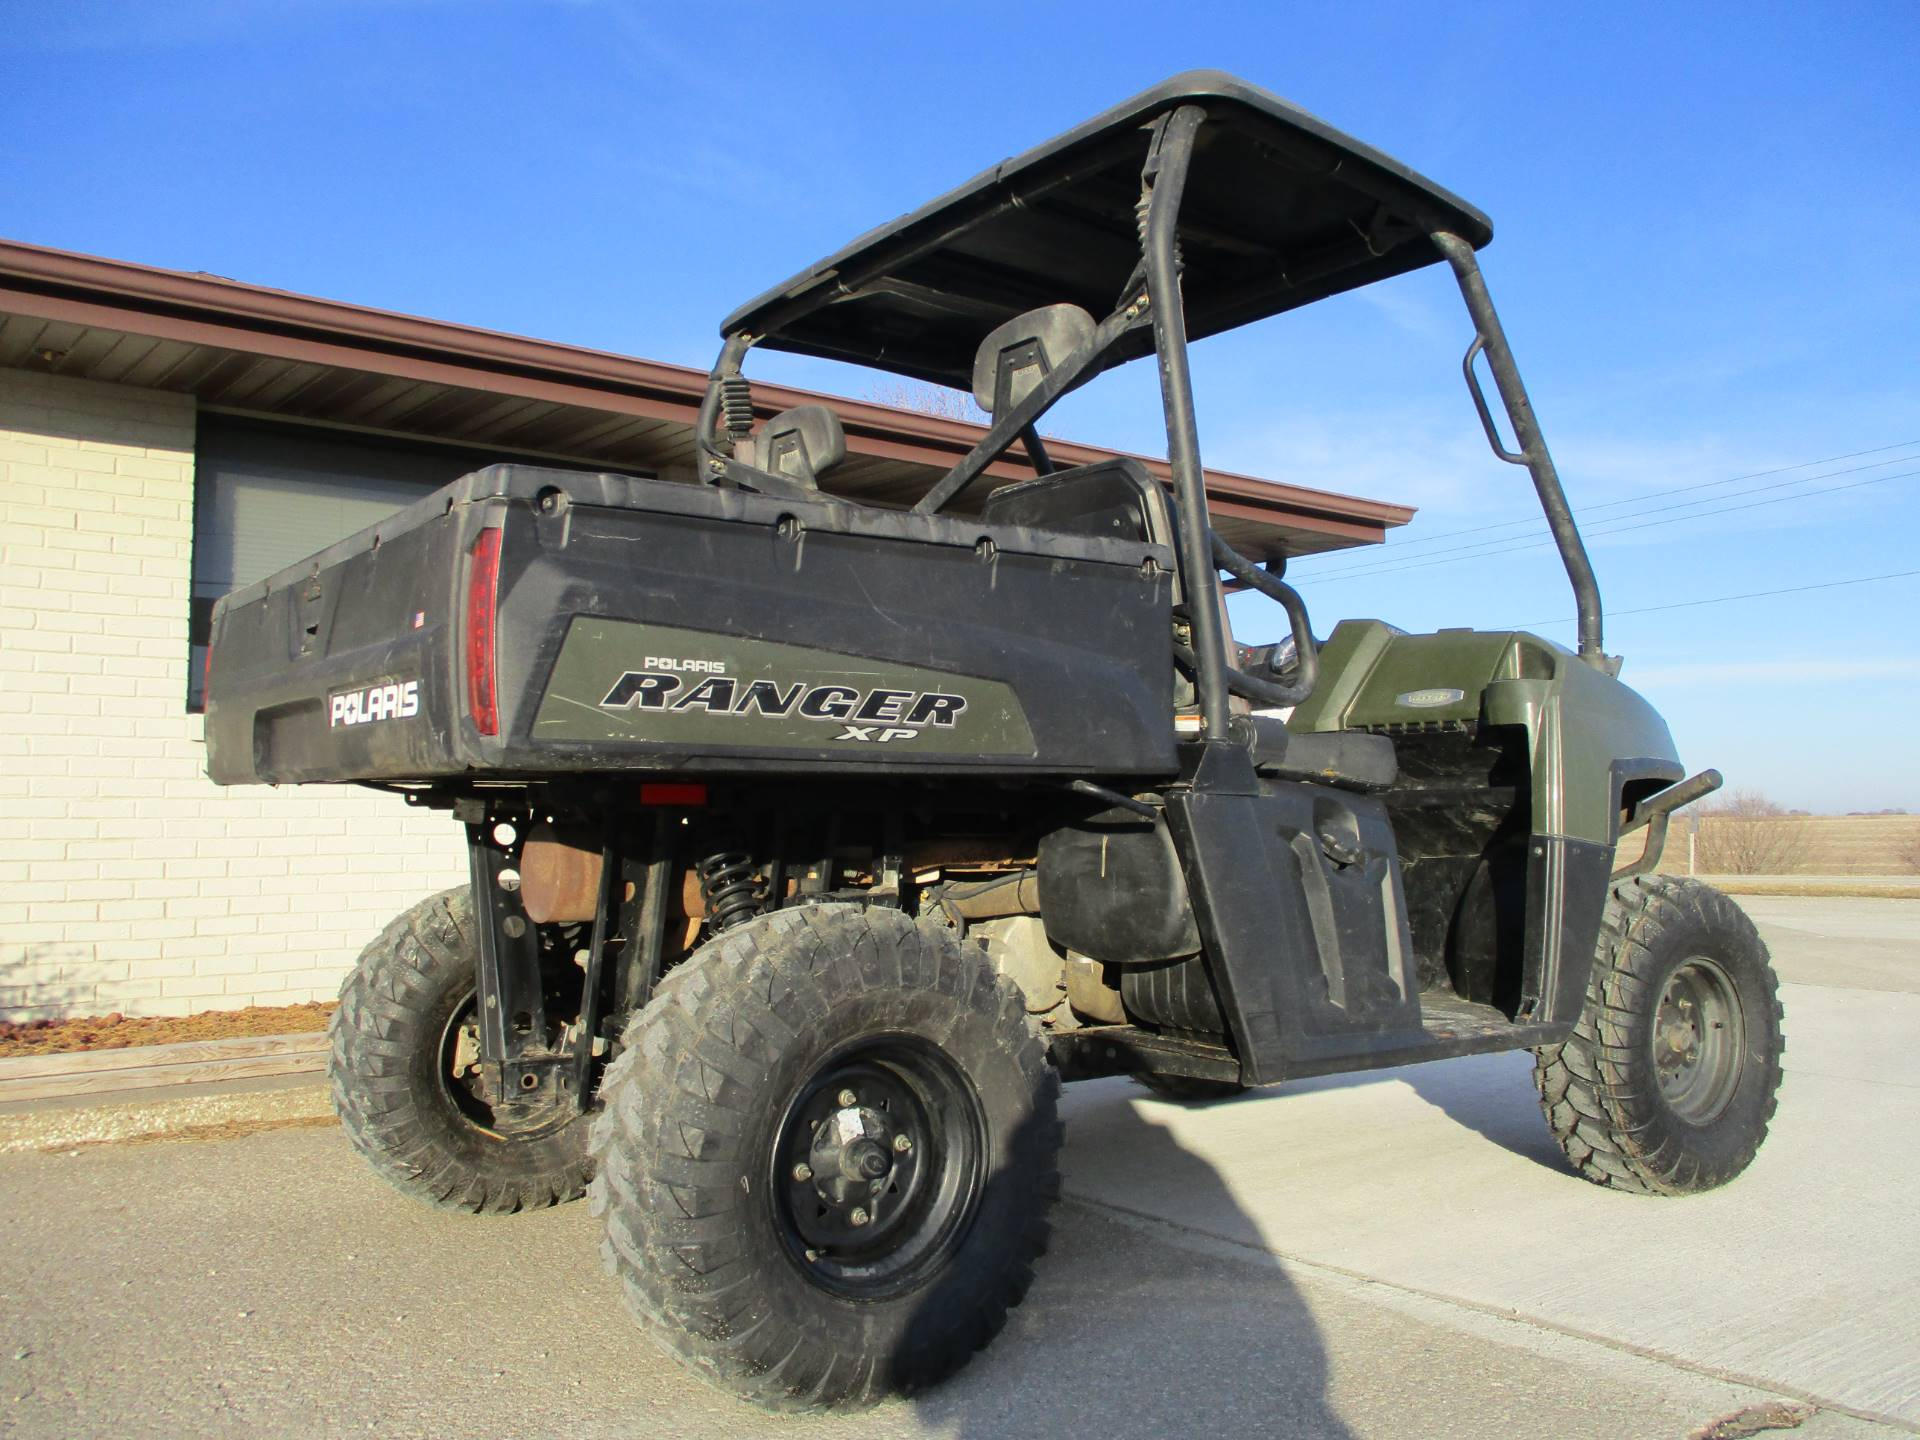 2011 Polaris Ranger XP® 800 in Winterset, Iowa - Photo 5